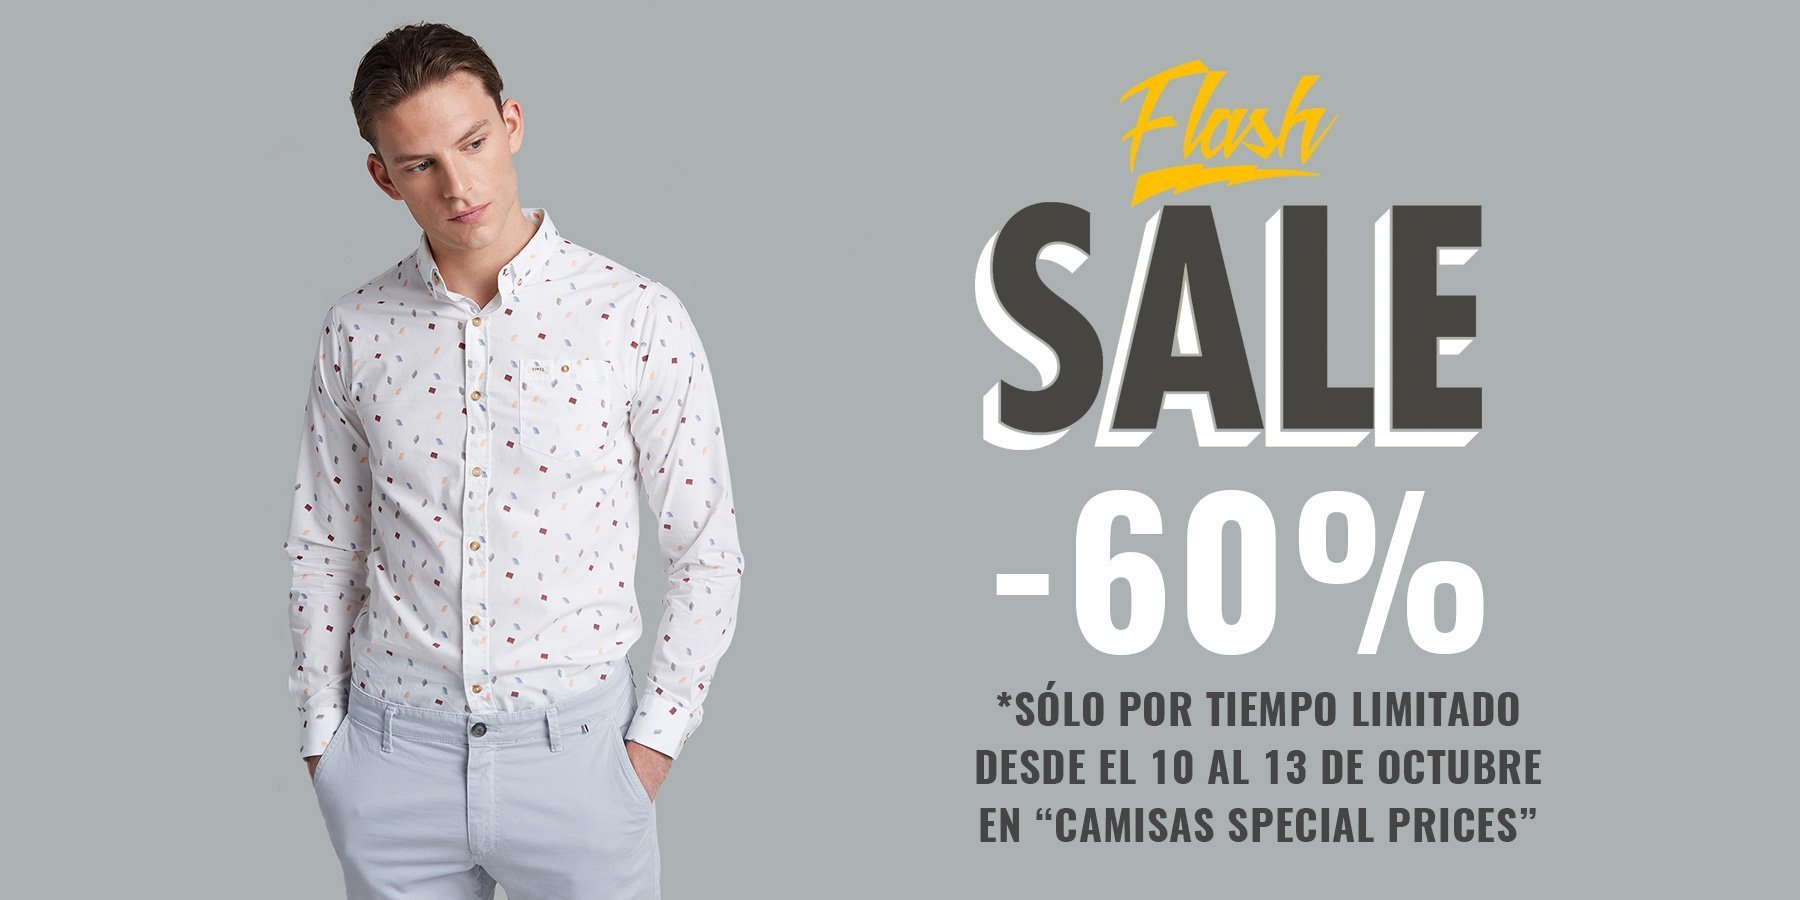 CAMISAS-FLASH-SALE-SPECIAL-PRICES-60